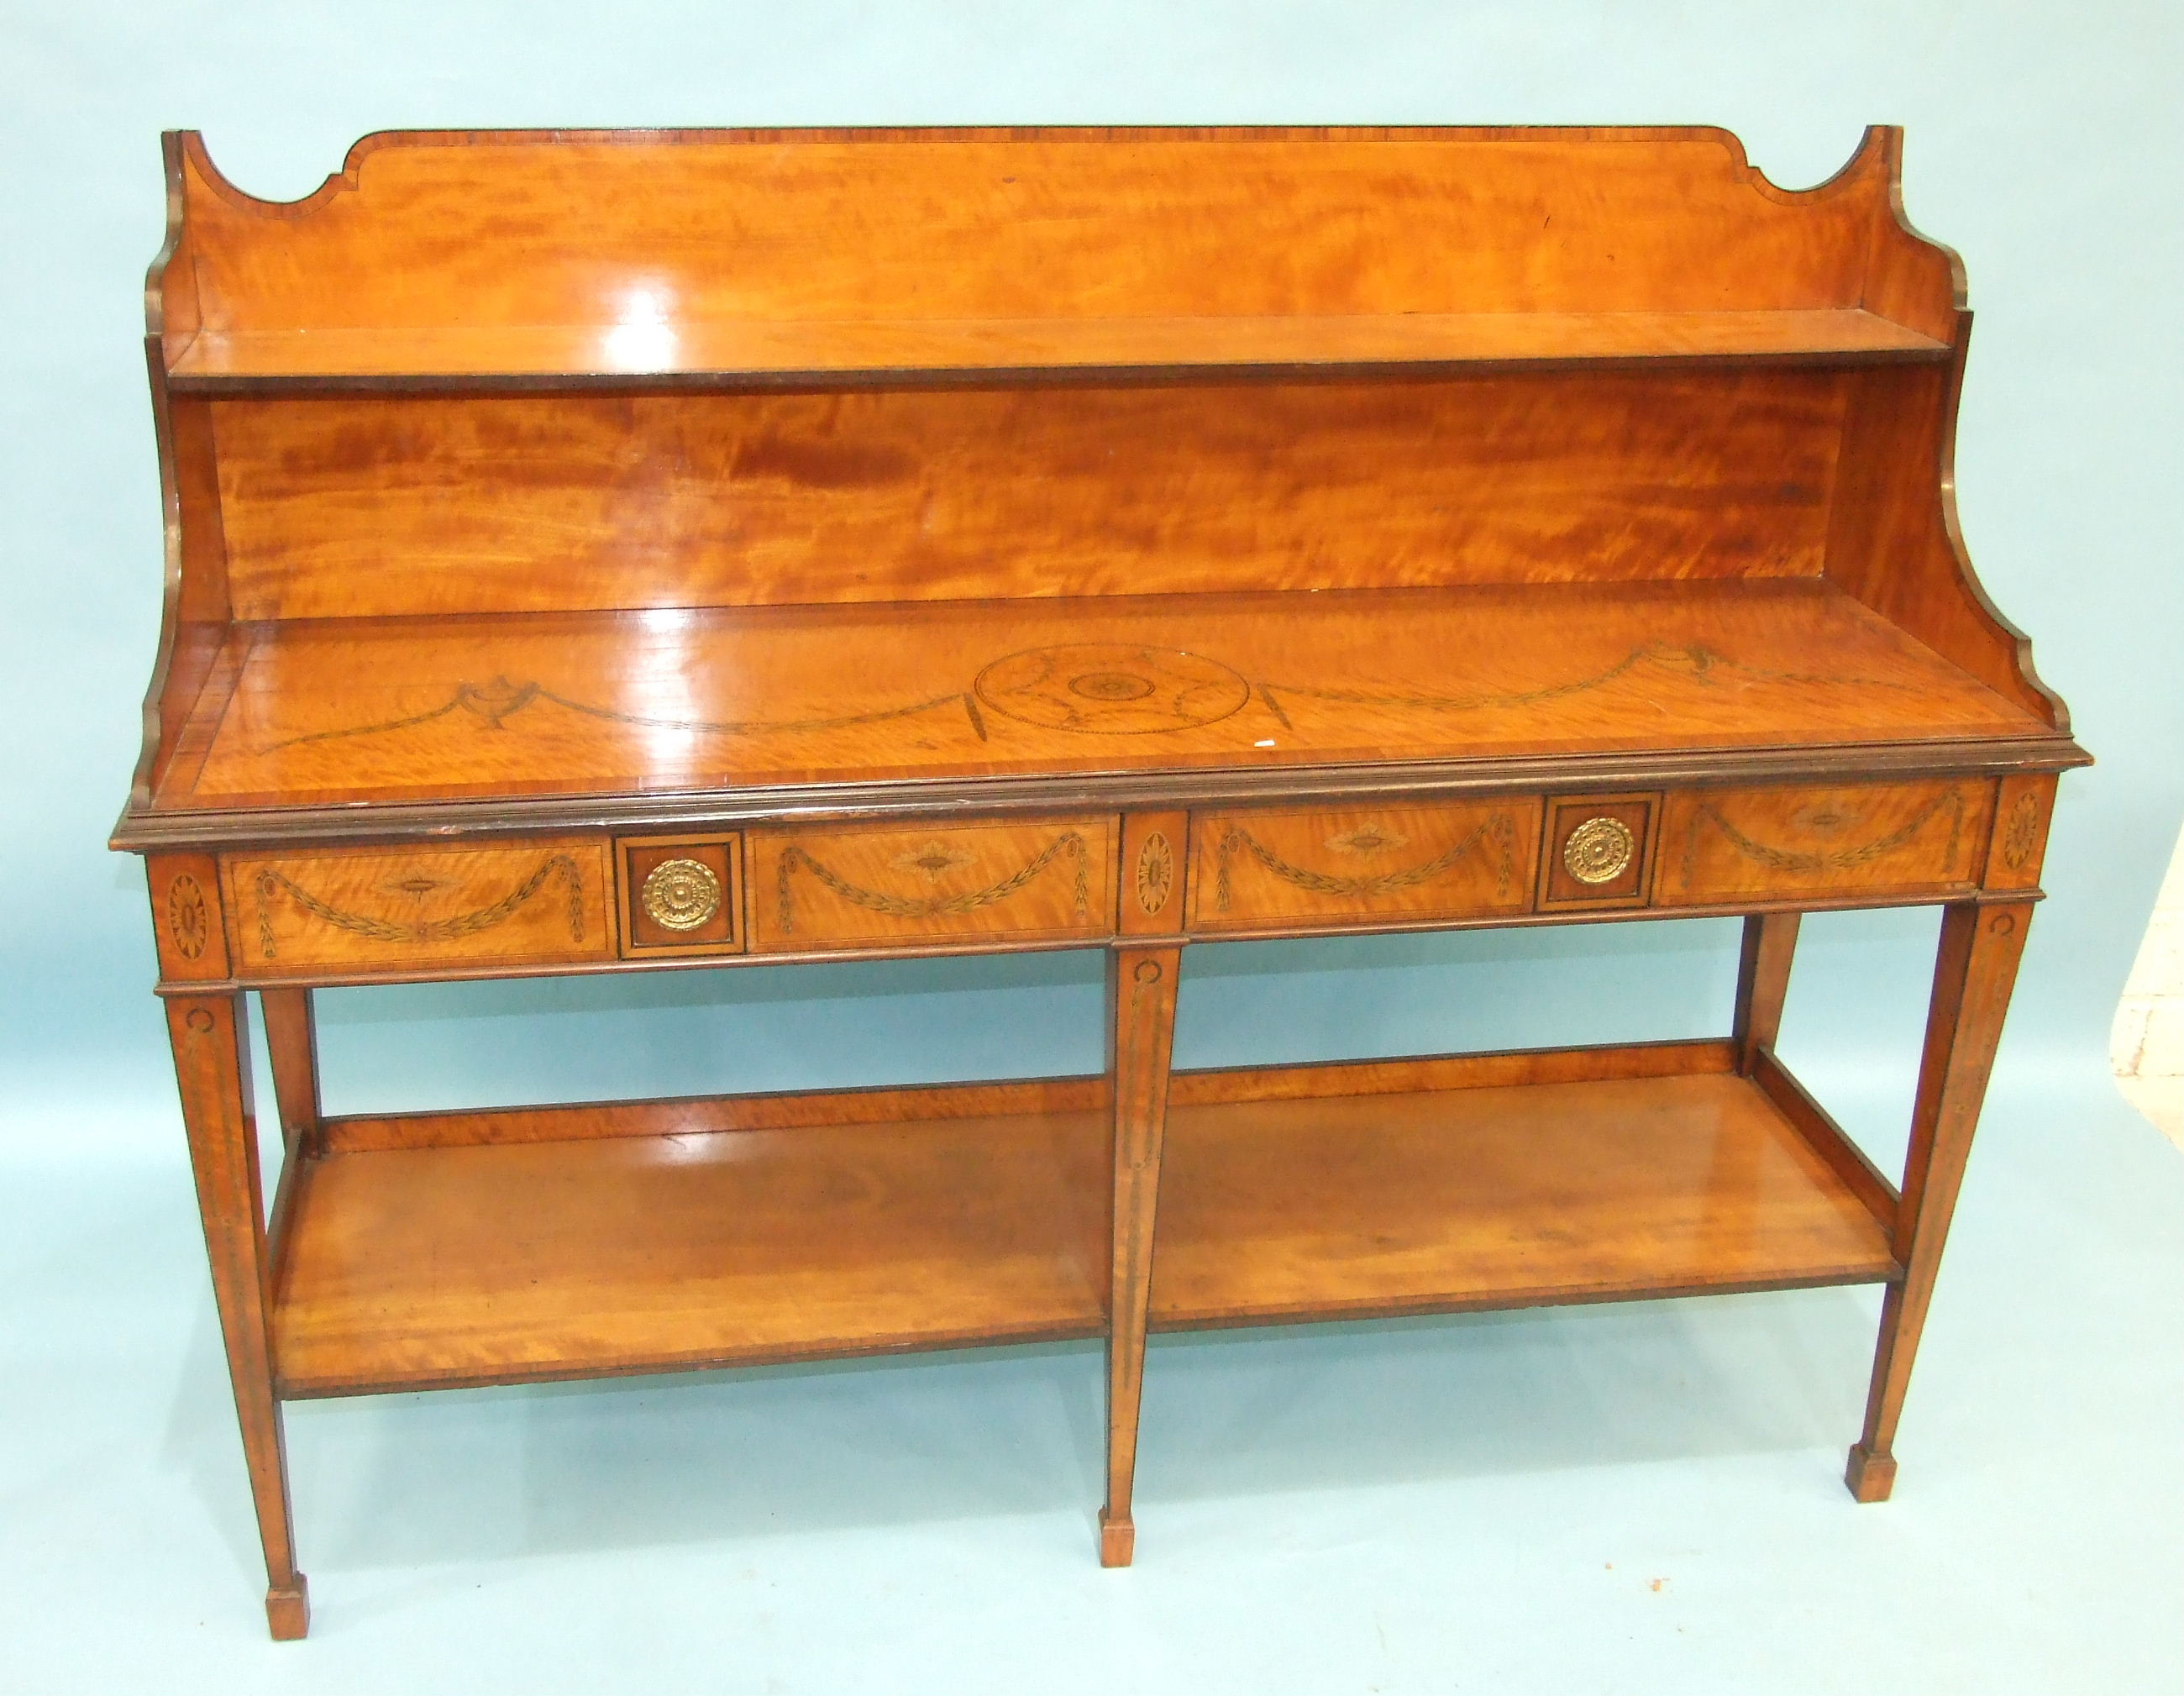 Lot 85 - An inlaid and cross-banded satinwood serving table in the Adam taste, the low shelved back above a